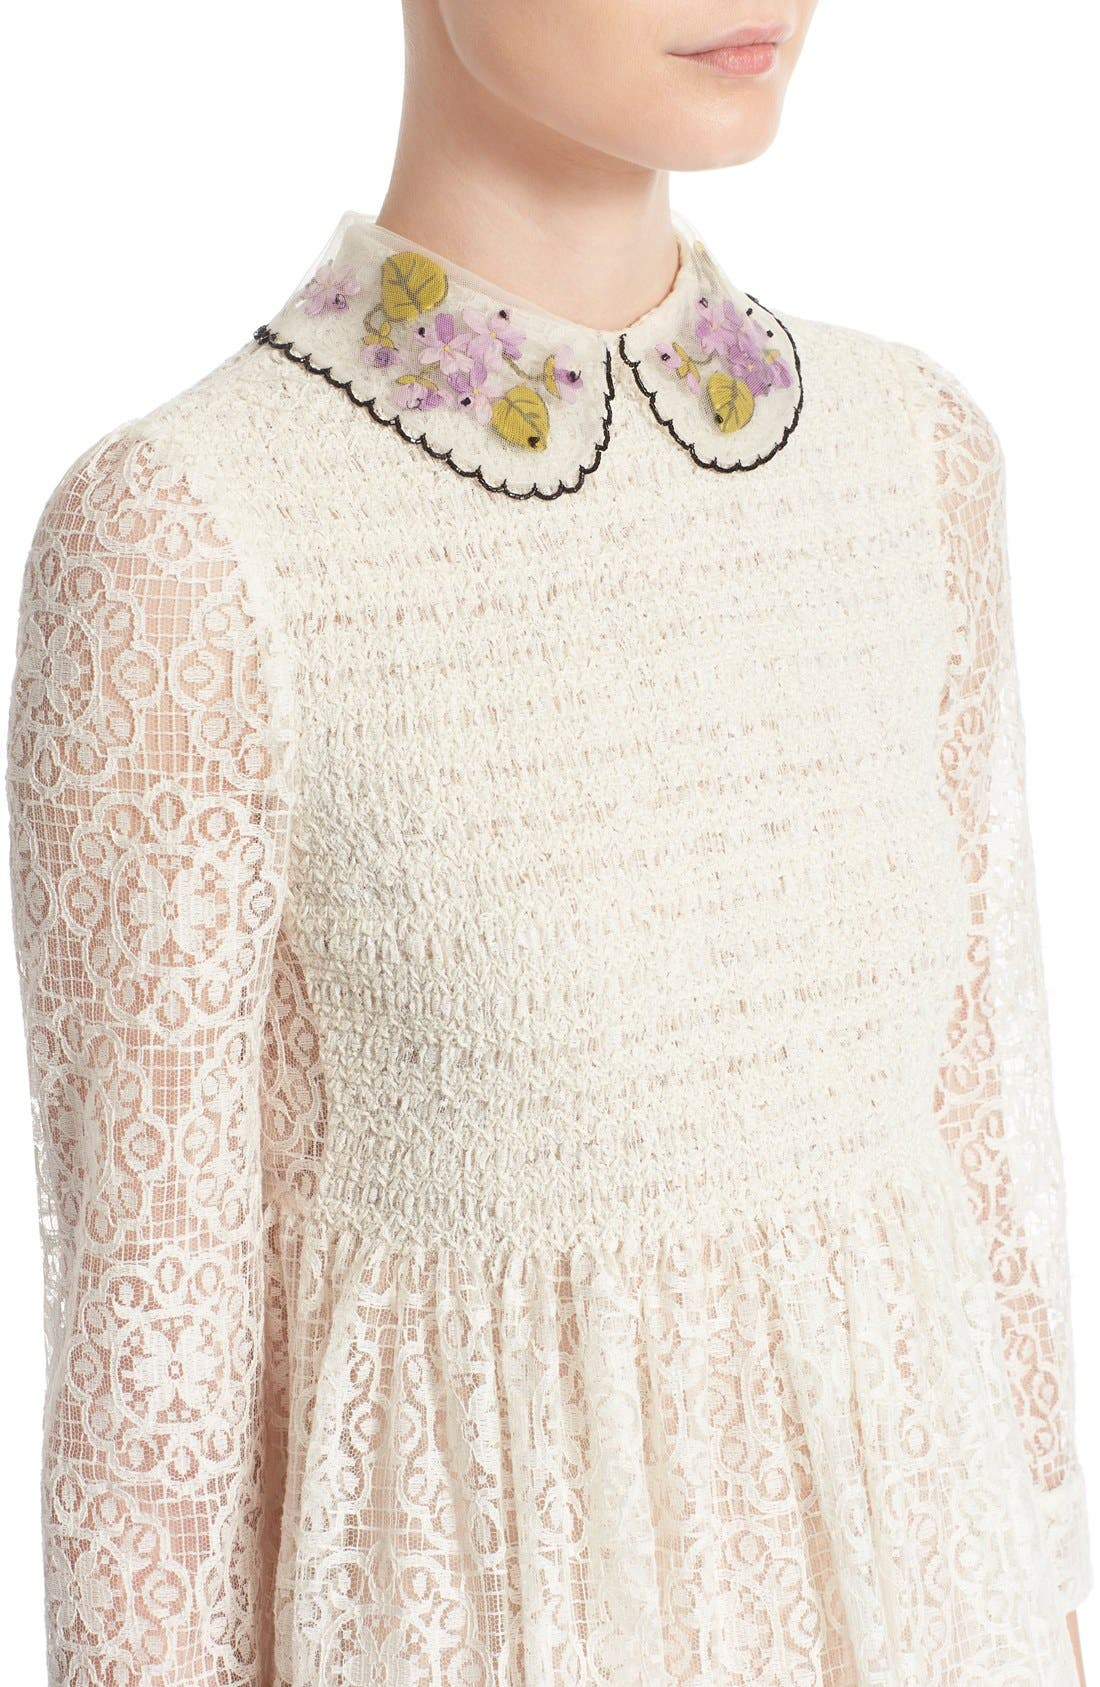 RED VALENTINO,                             Smocked Bodice Lace Dress,                             Alternate thumbnail 2, color,                             900